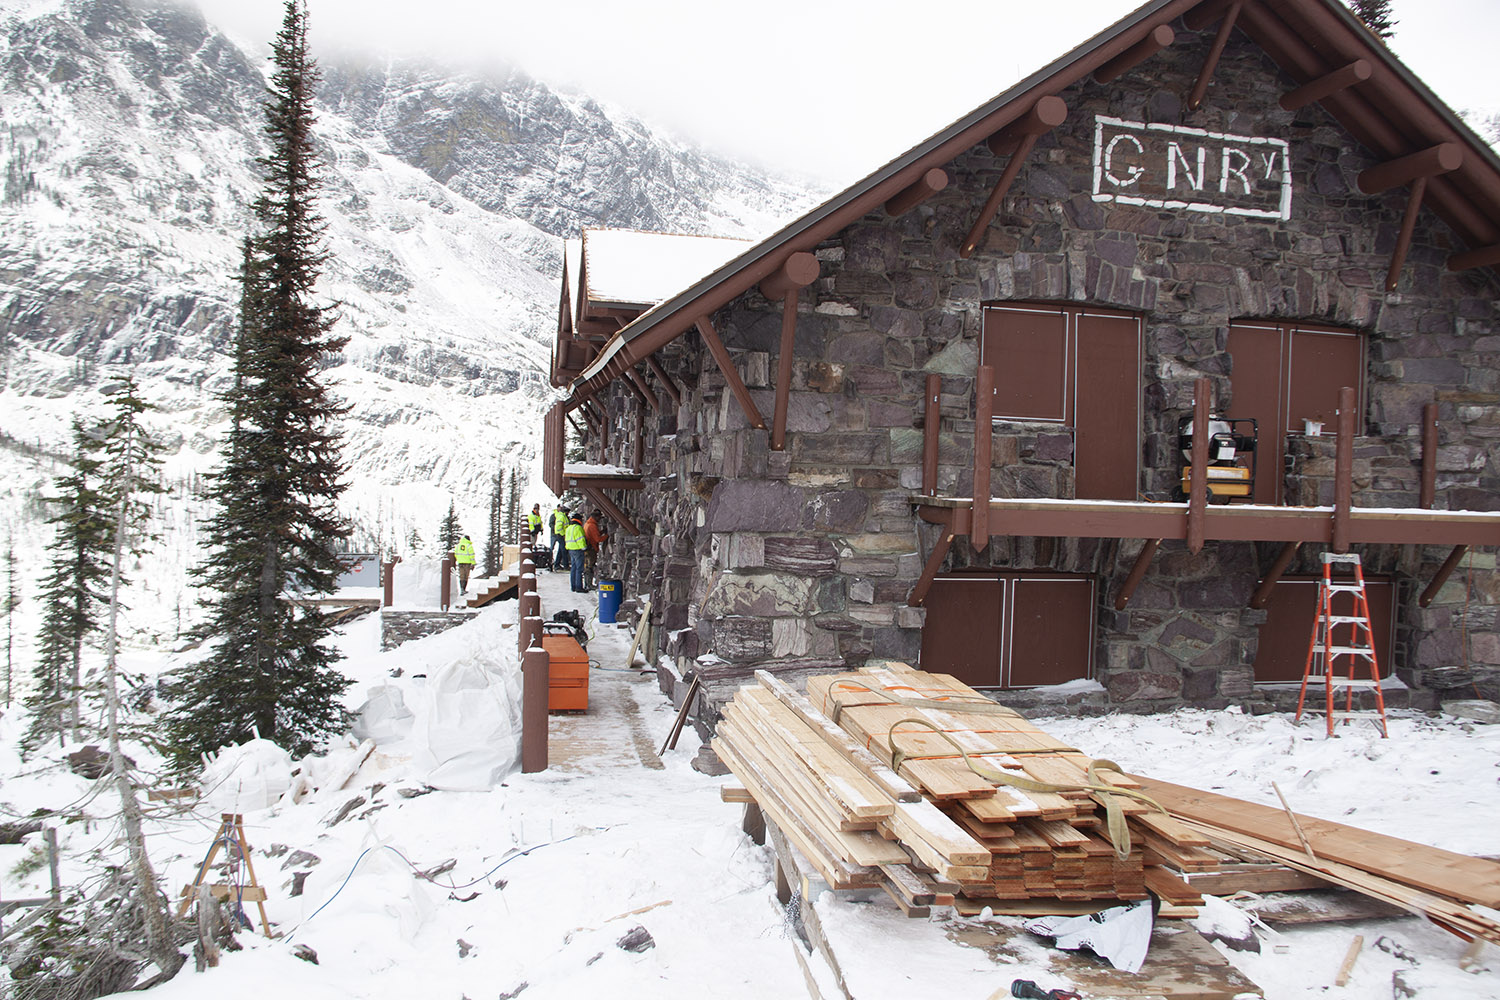 Sperry Chalet during construction Phase 2 with light snowfall